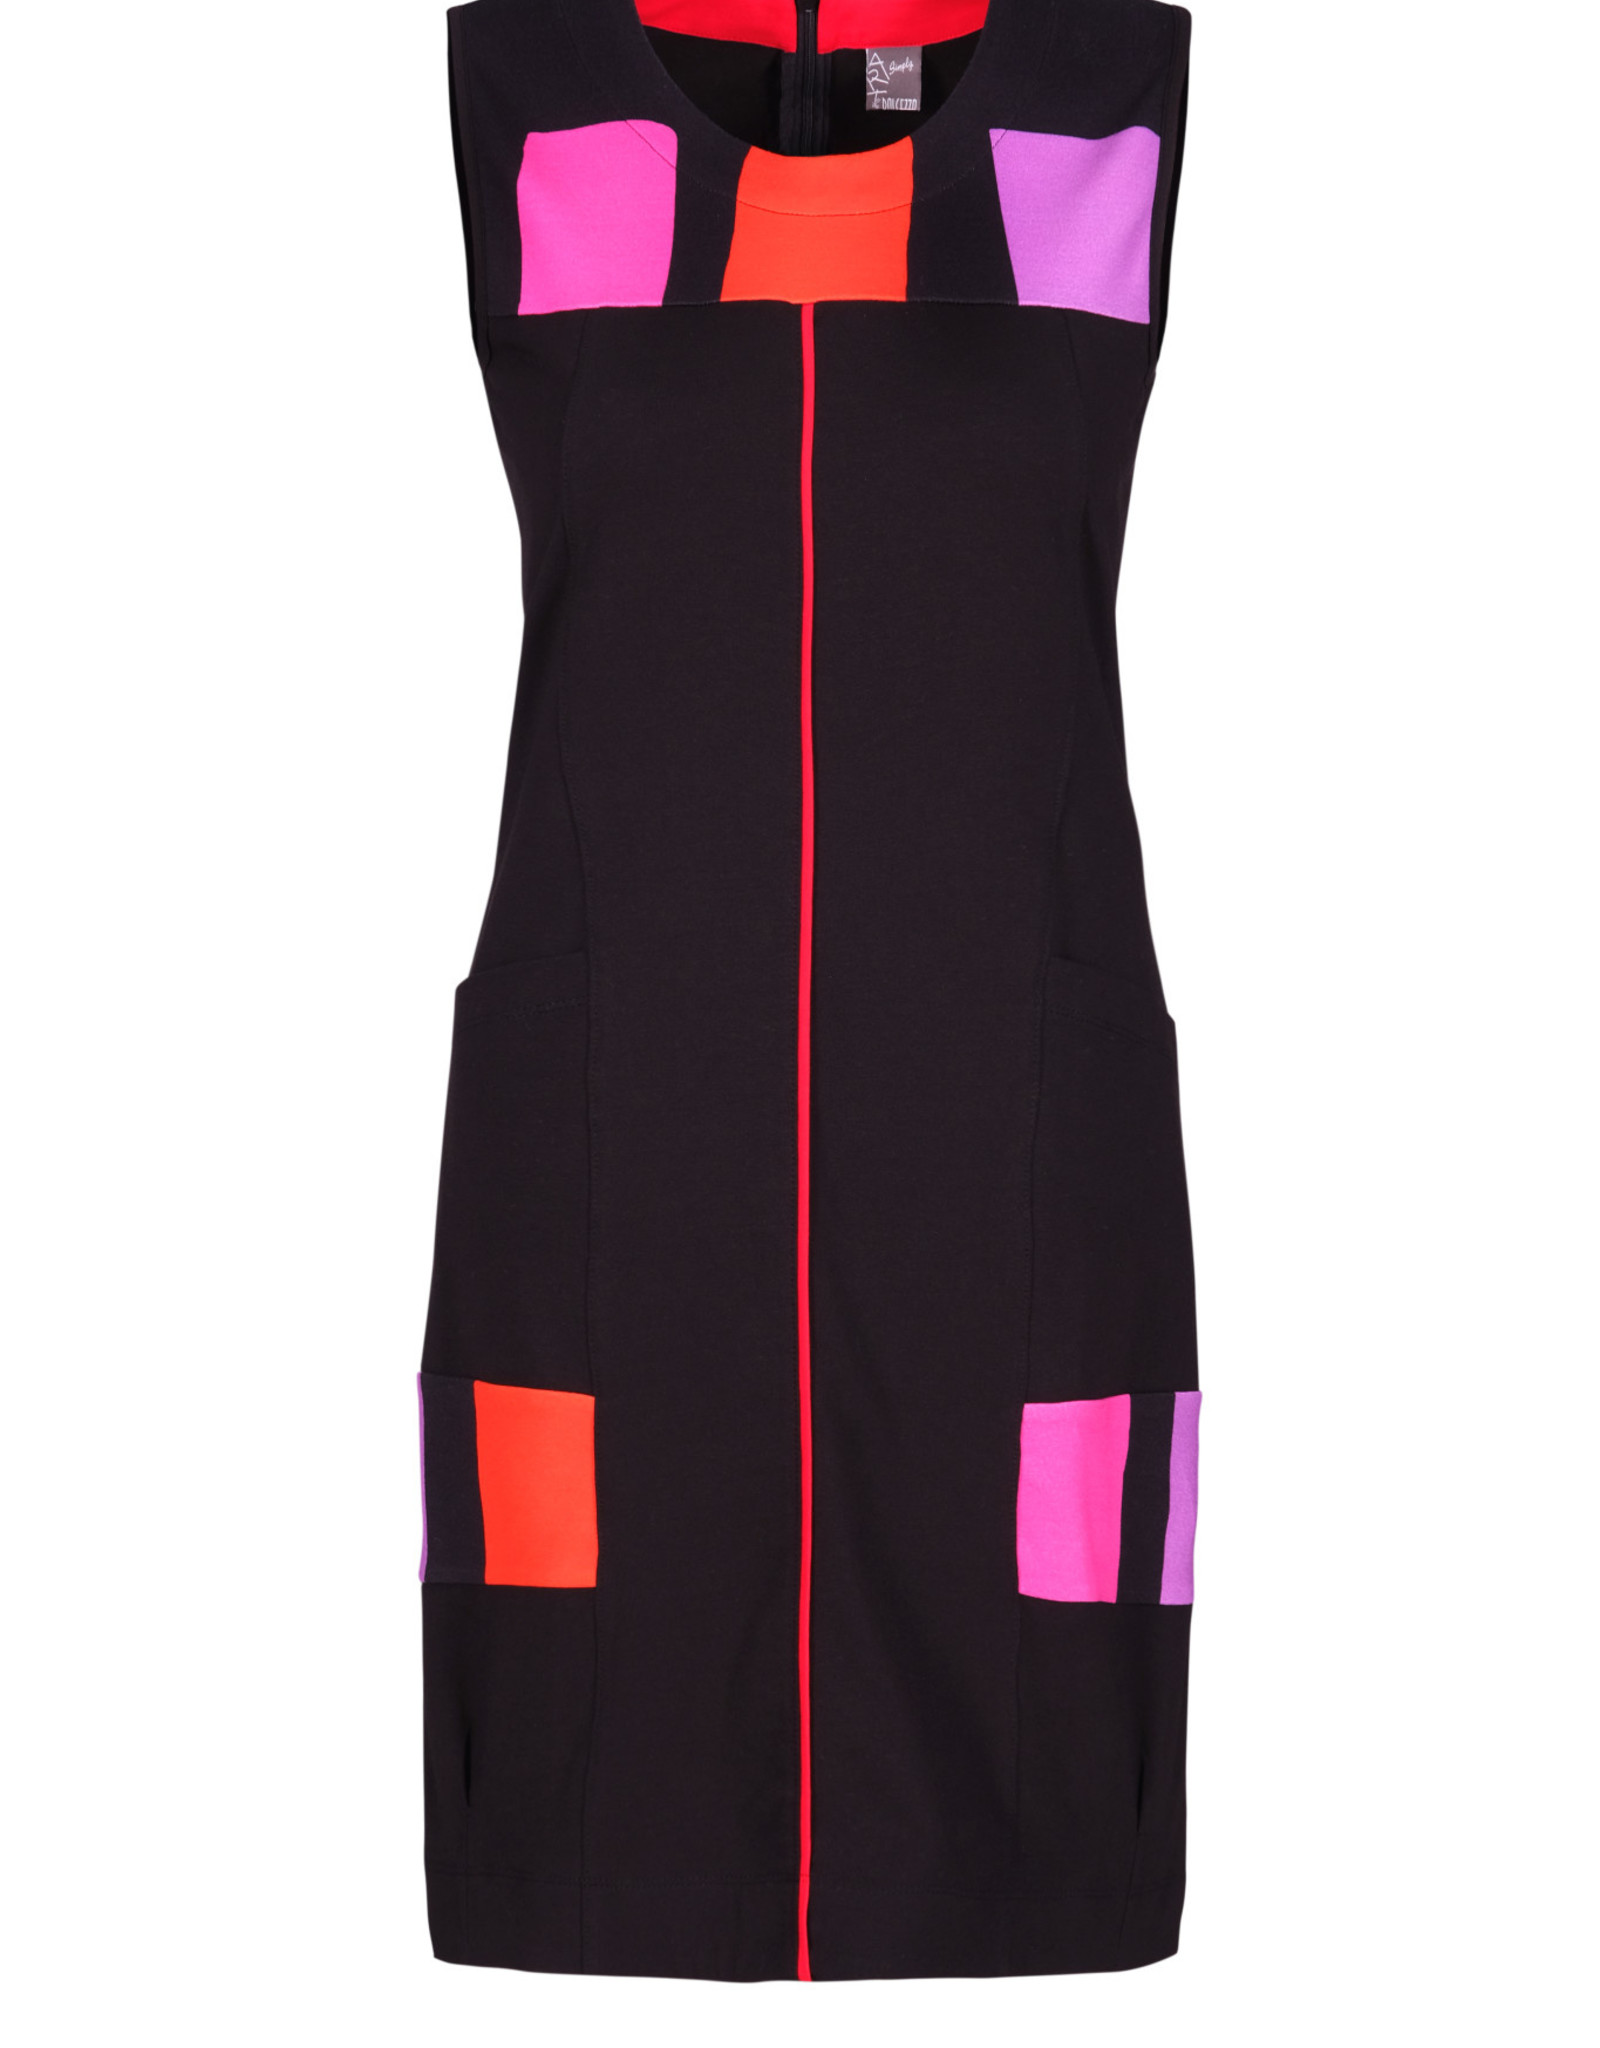 Dolcezza 21612 Colour Blocking Dress